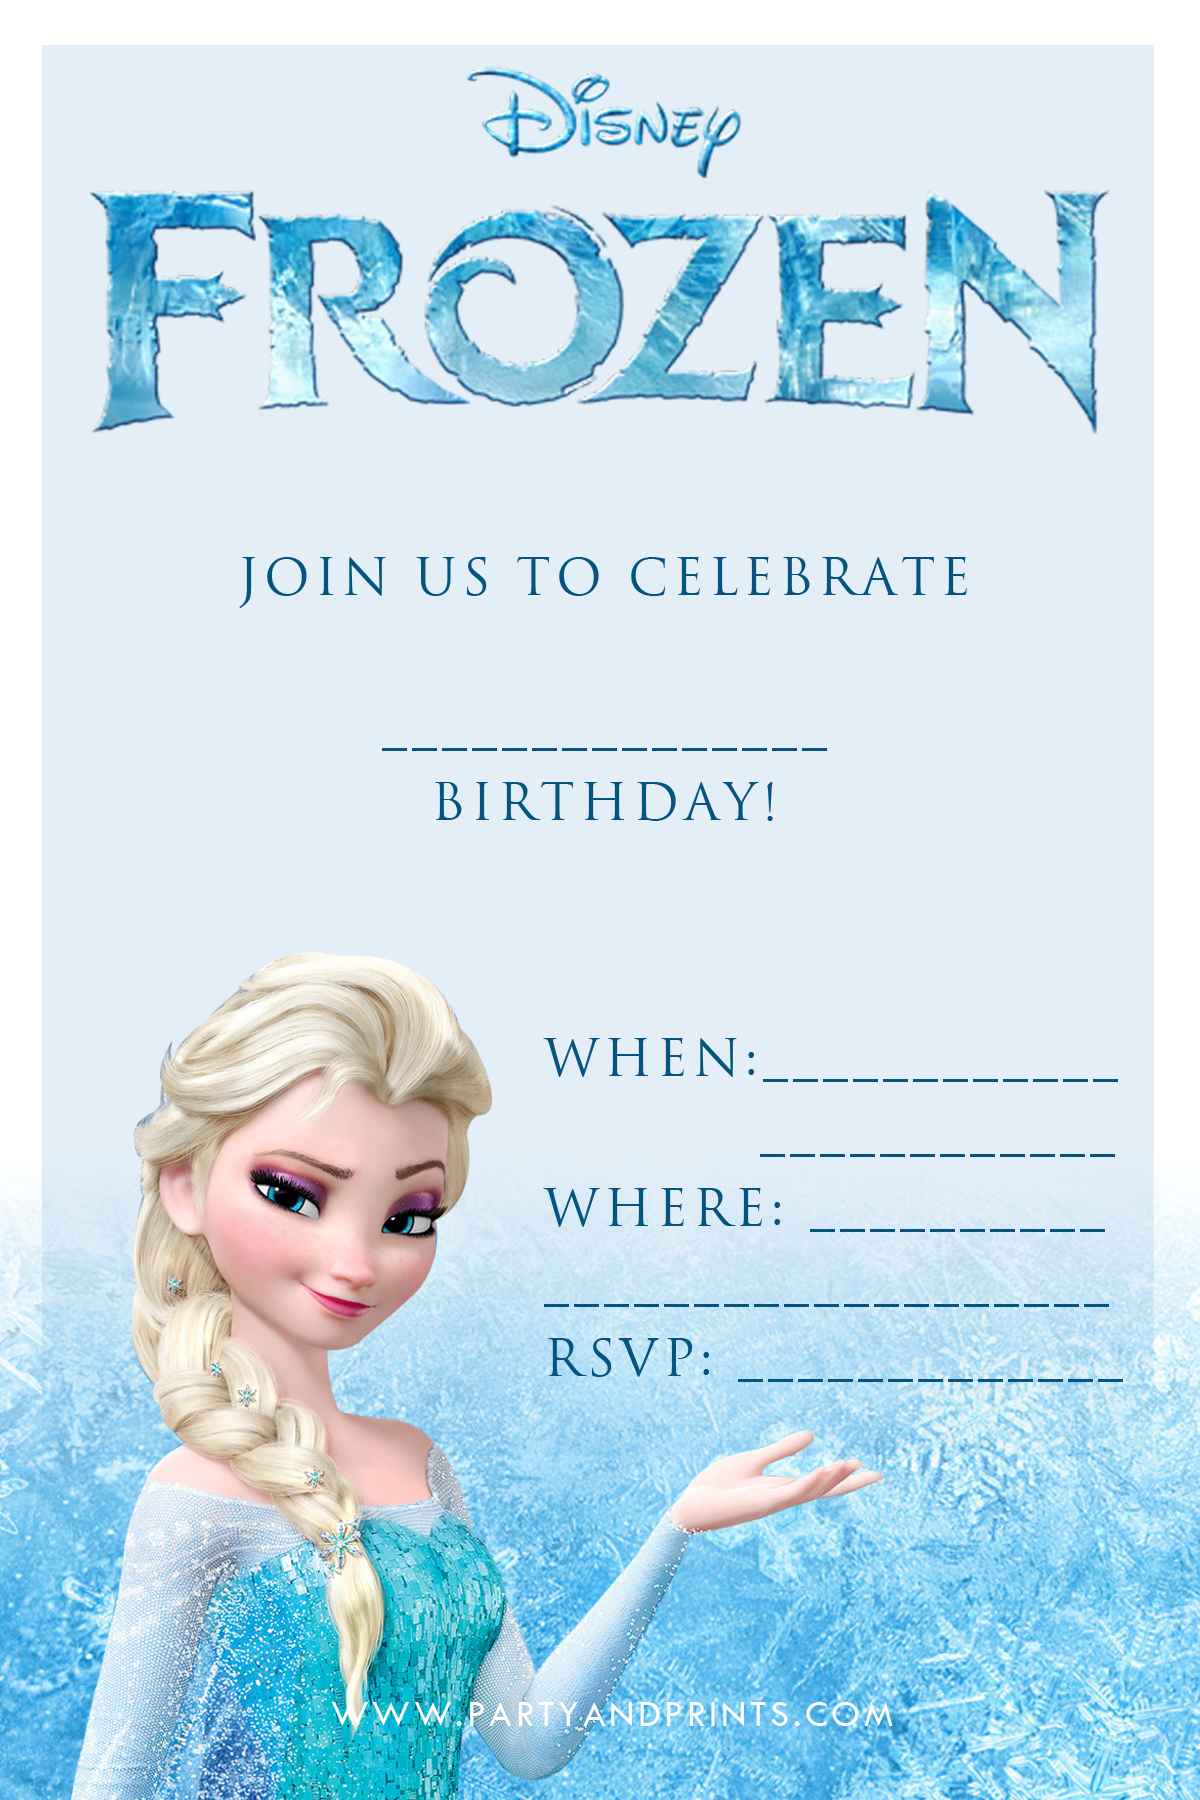 5 Images of Disney Frozen Printable Templates Free